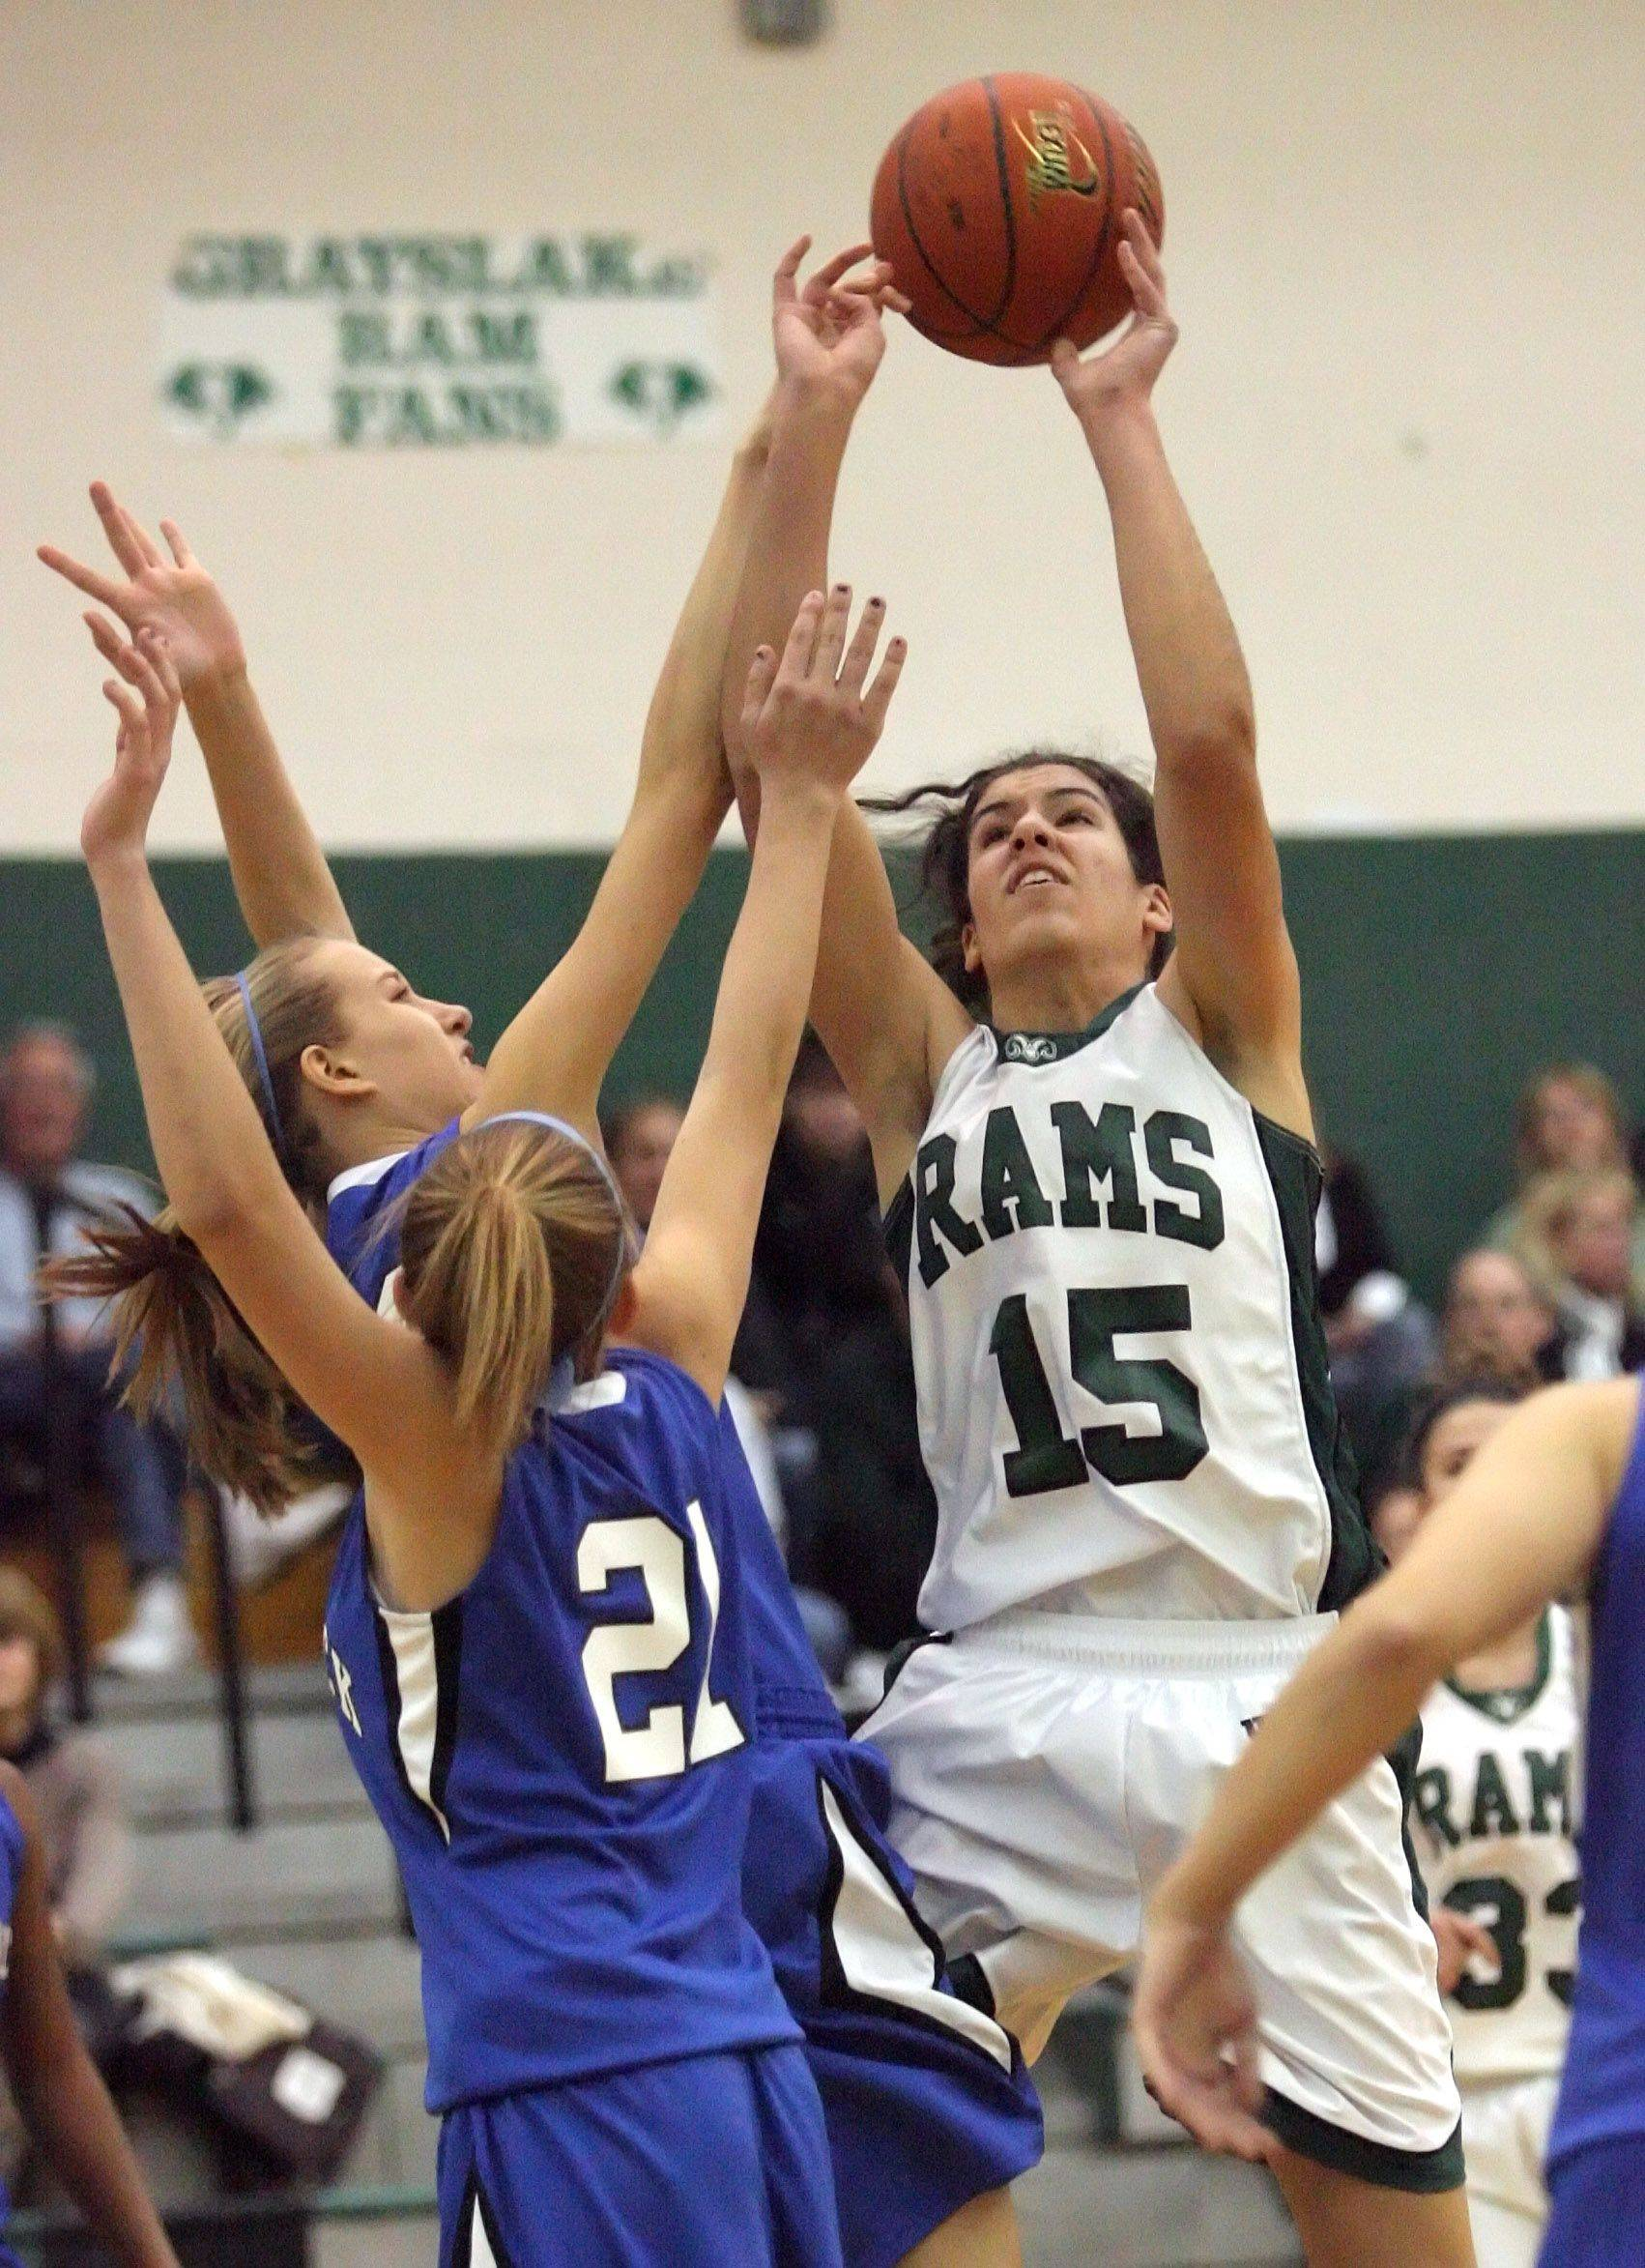 Grayslake Central's Rebekah Llorens shoots over Woodstock's Cody Brand, left, and Sami Ludwig on Tuesday night.